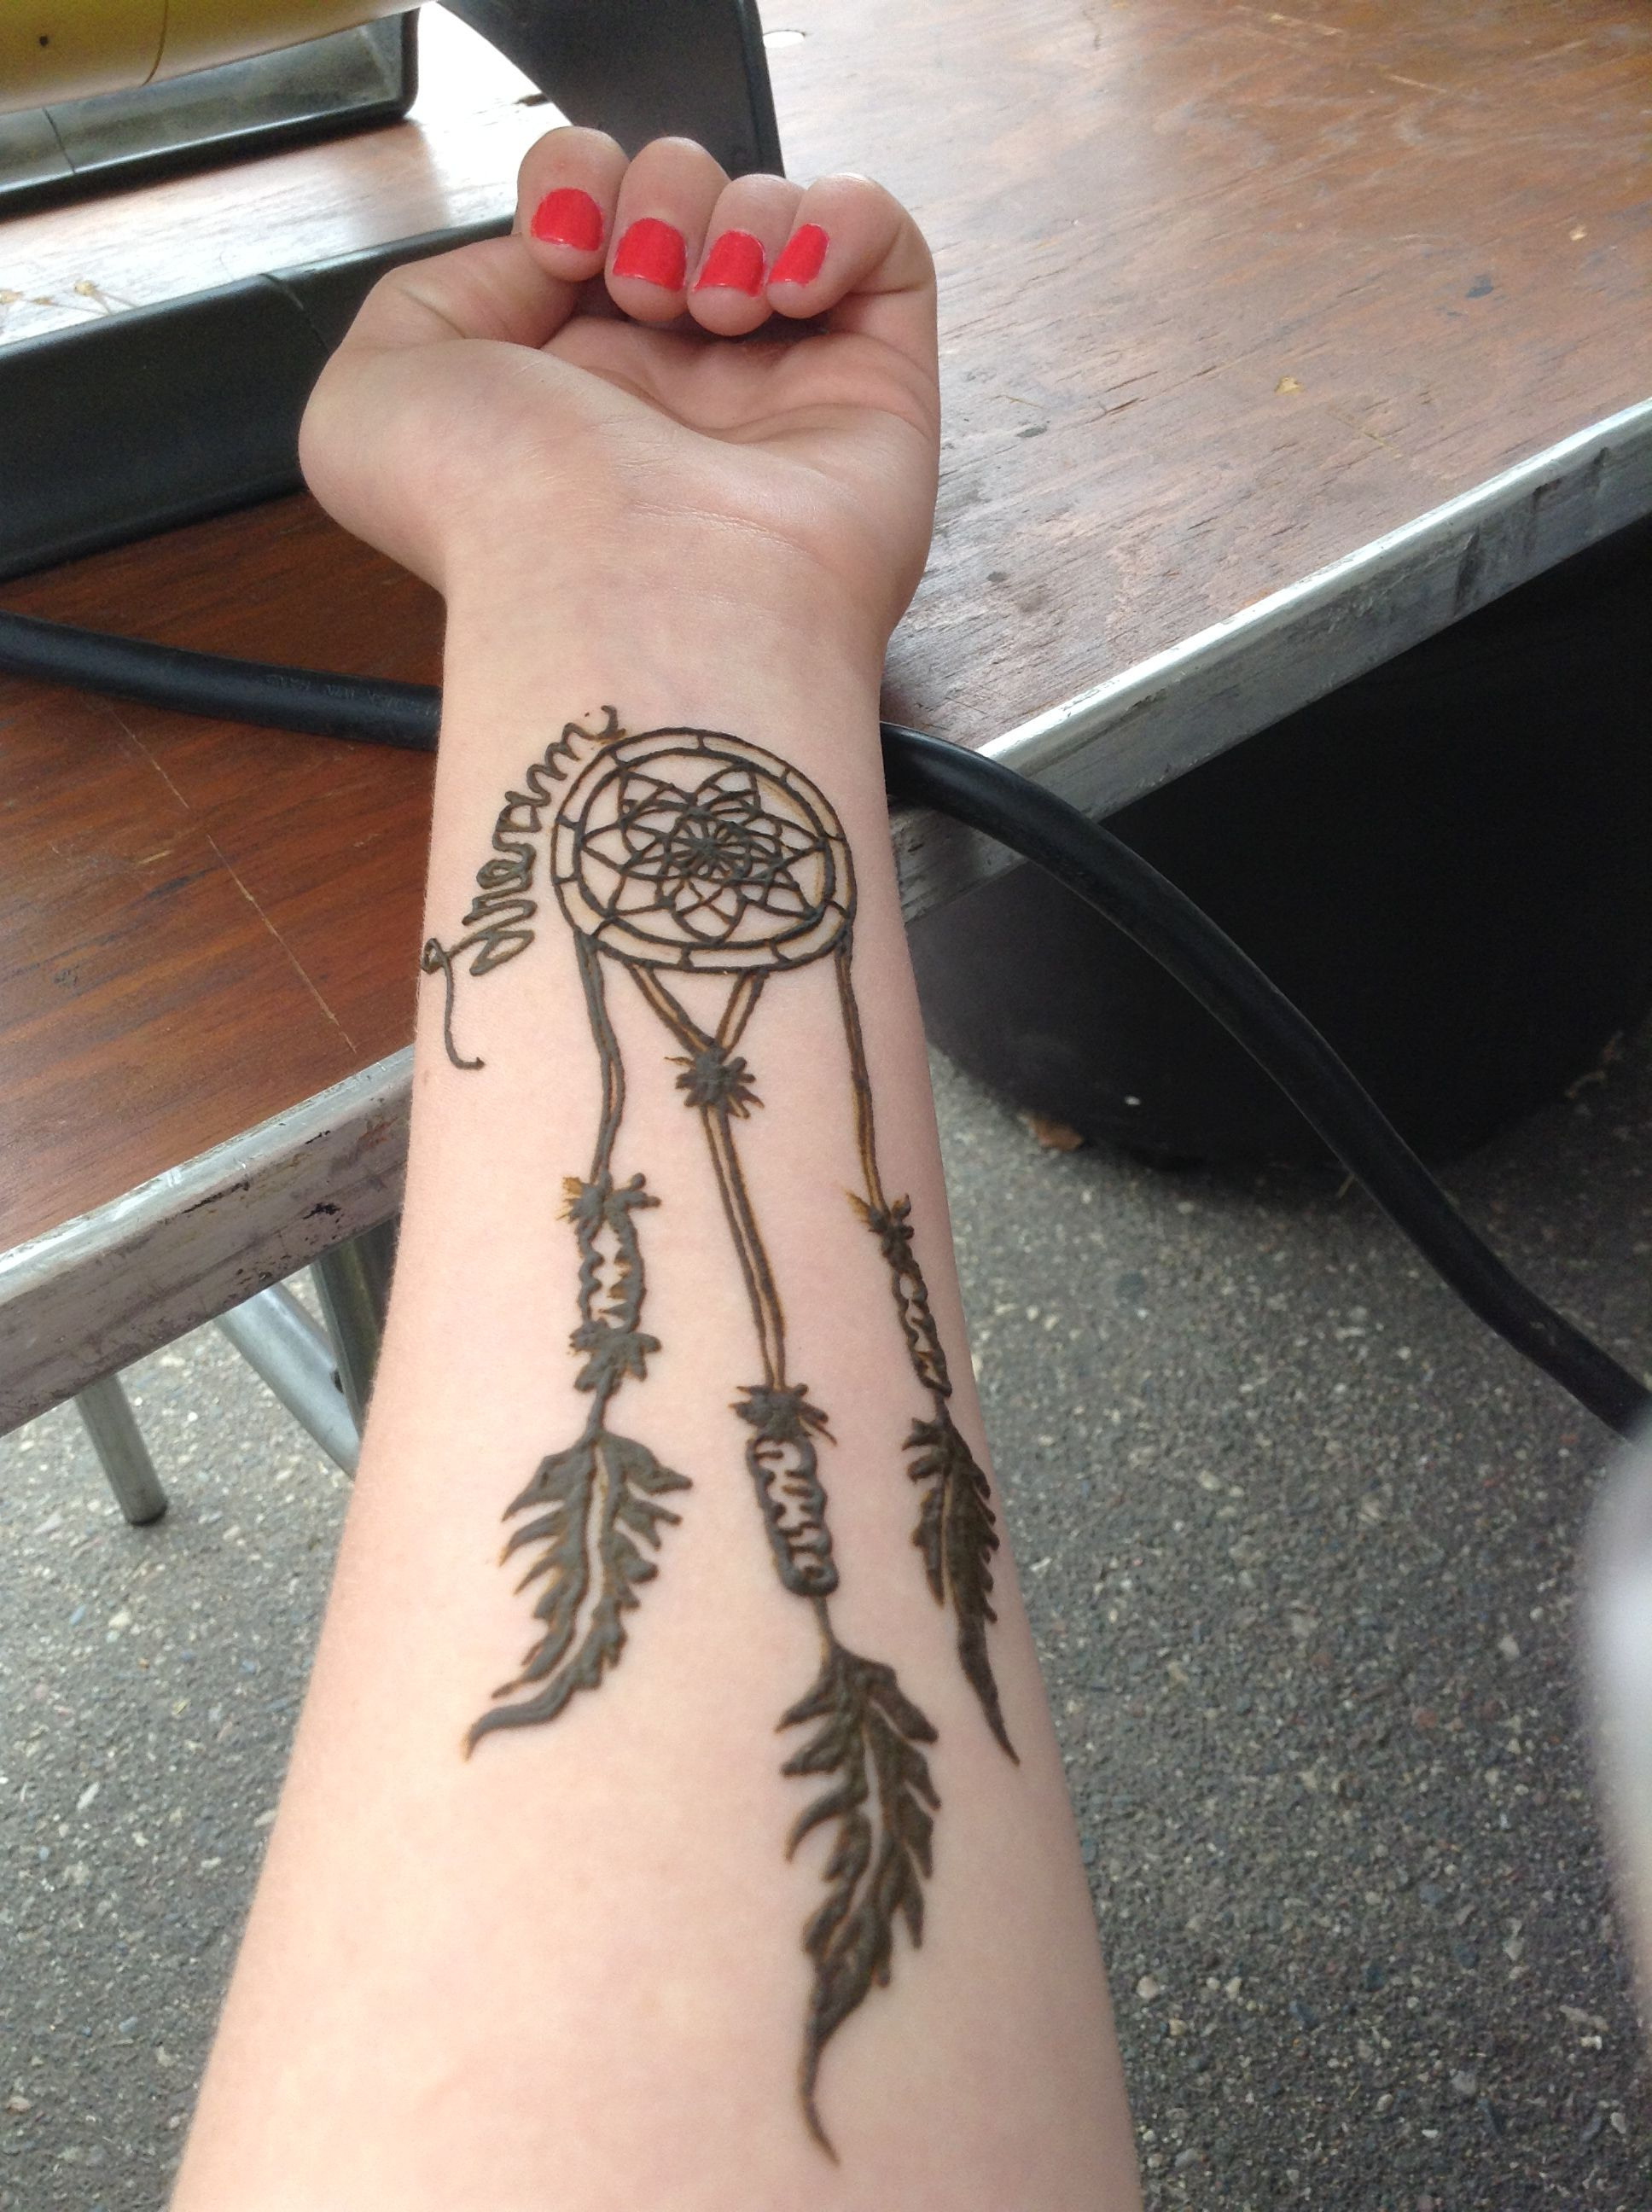 Little Henna Tattoos: Cute Henna Tattoos, Henna Tattoo